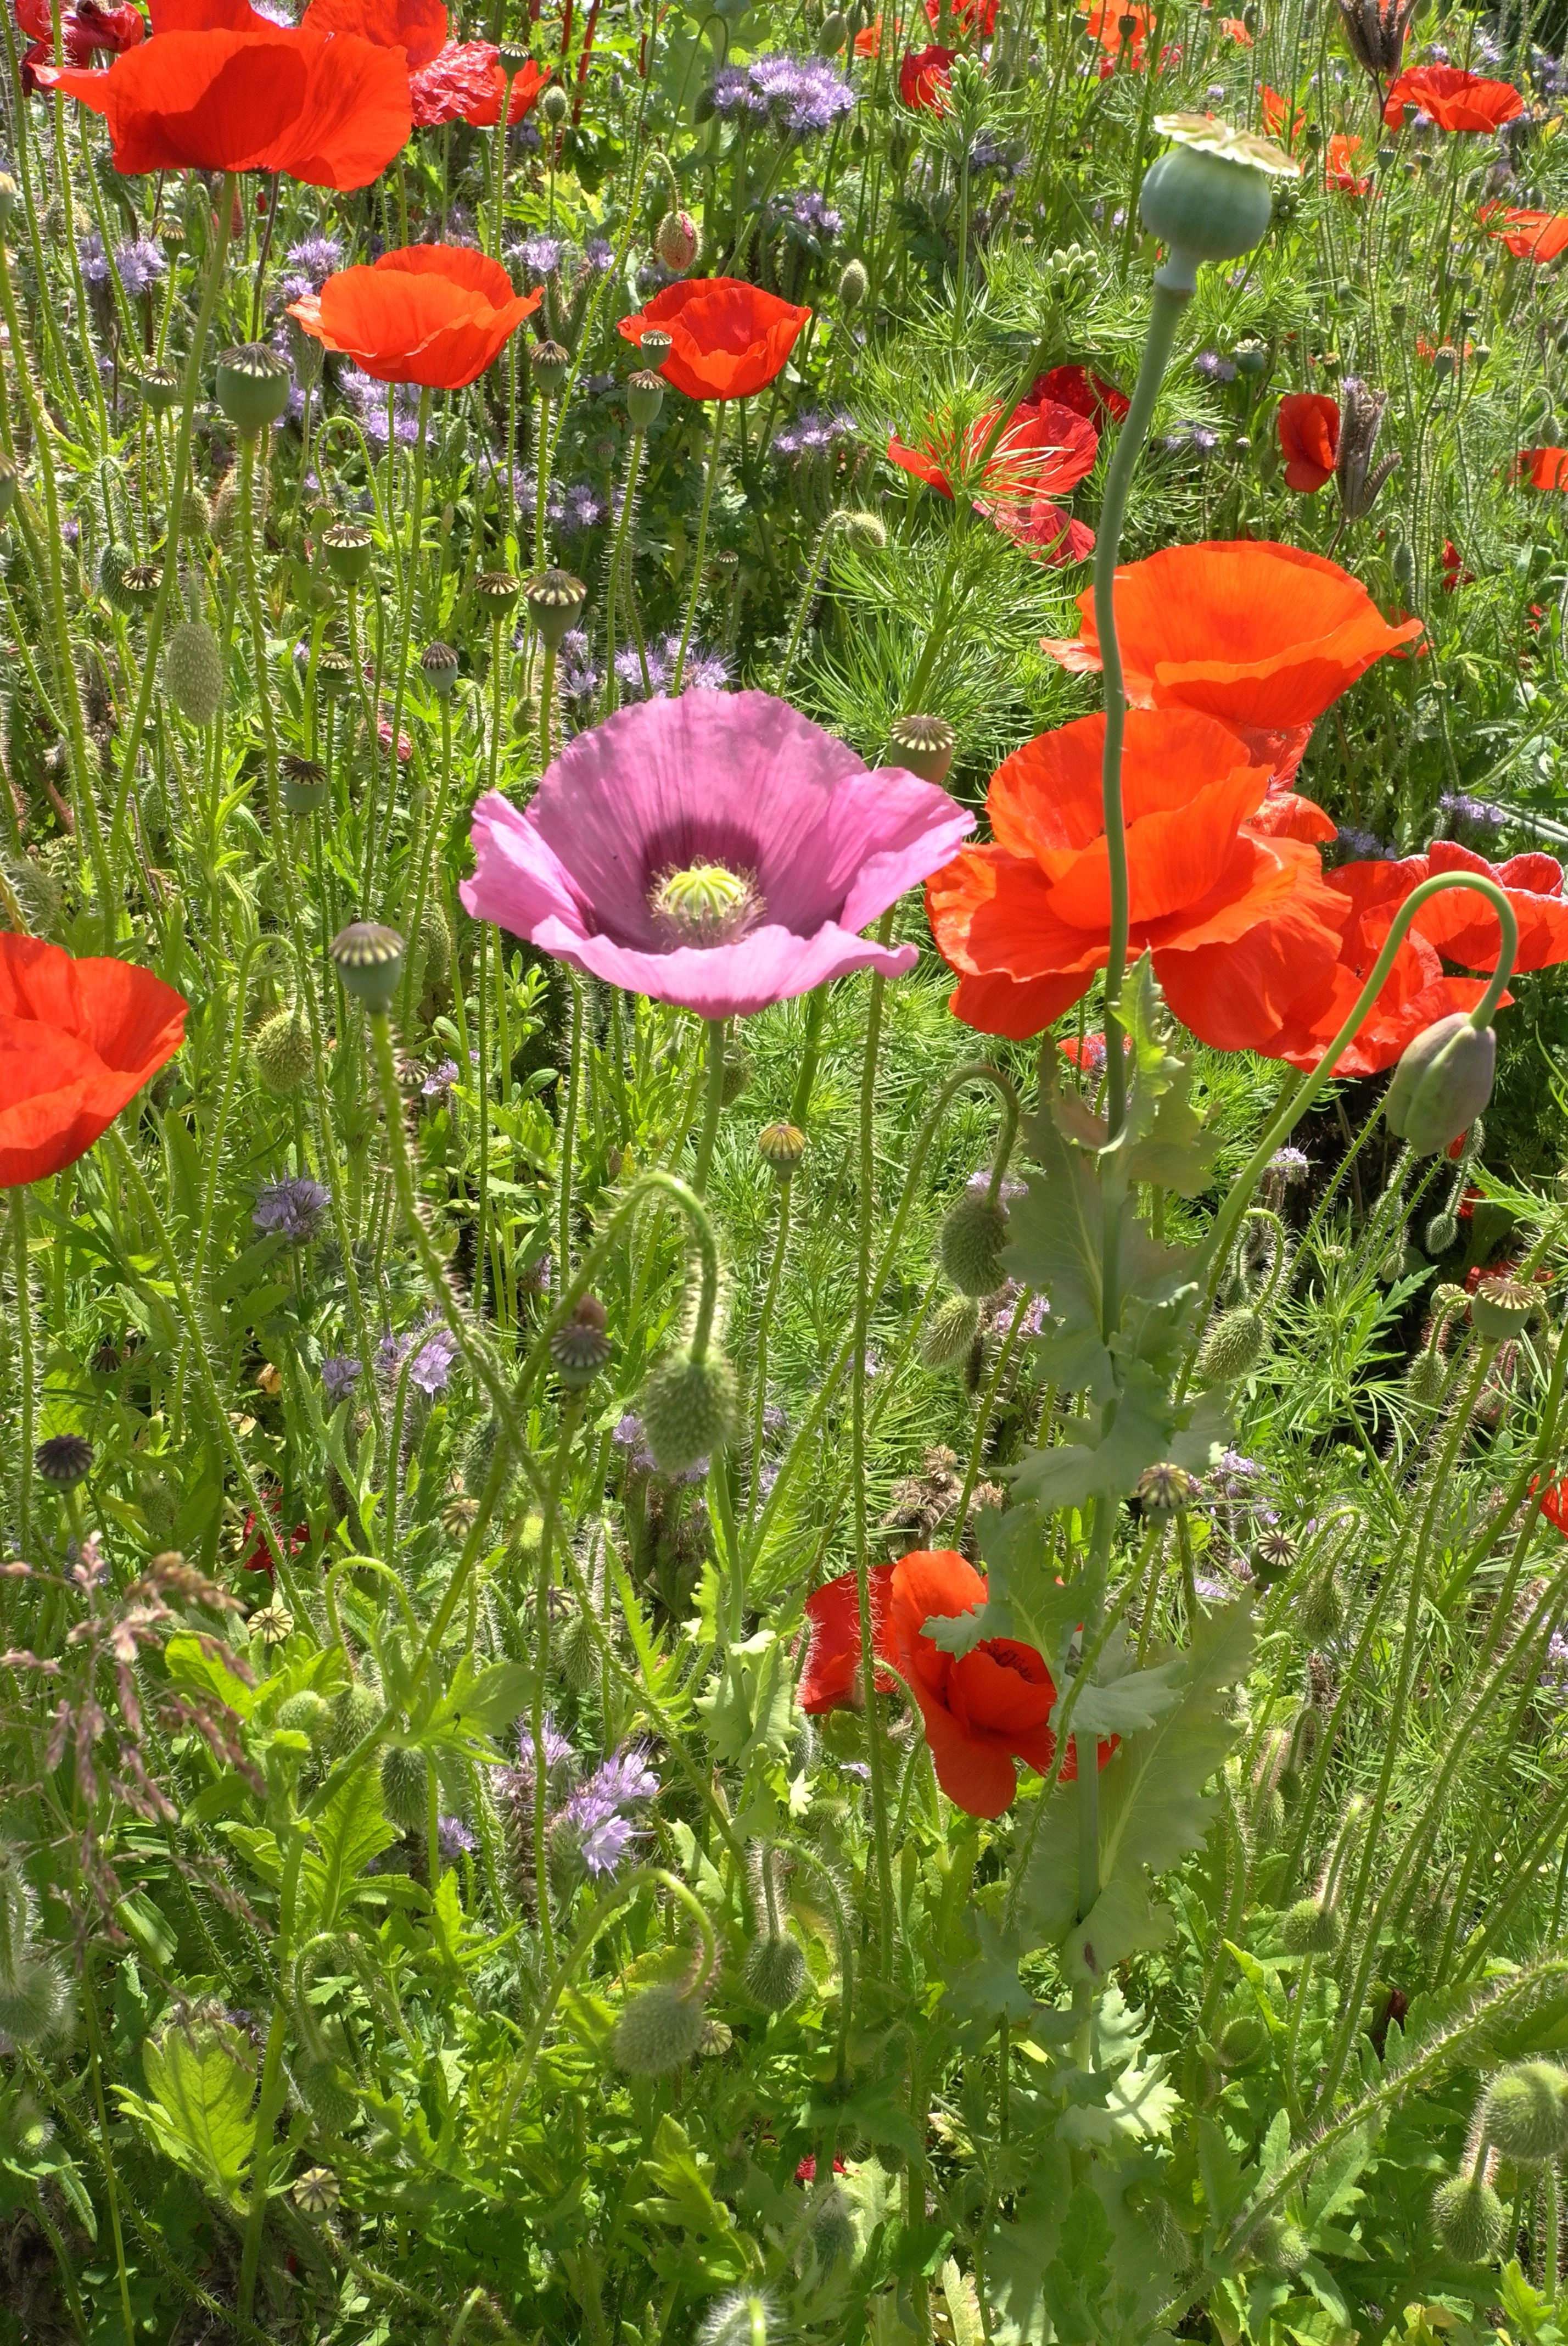 Field Poppies And An Opium Poppy In The Allotment Poppies A